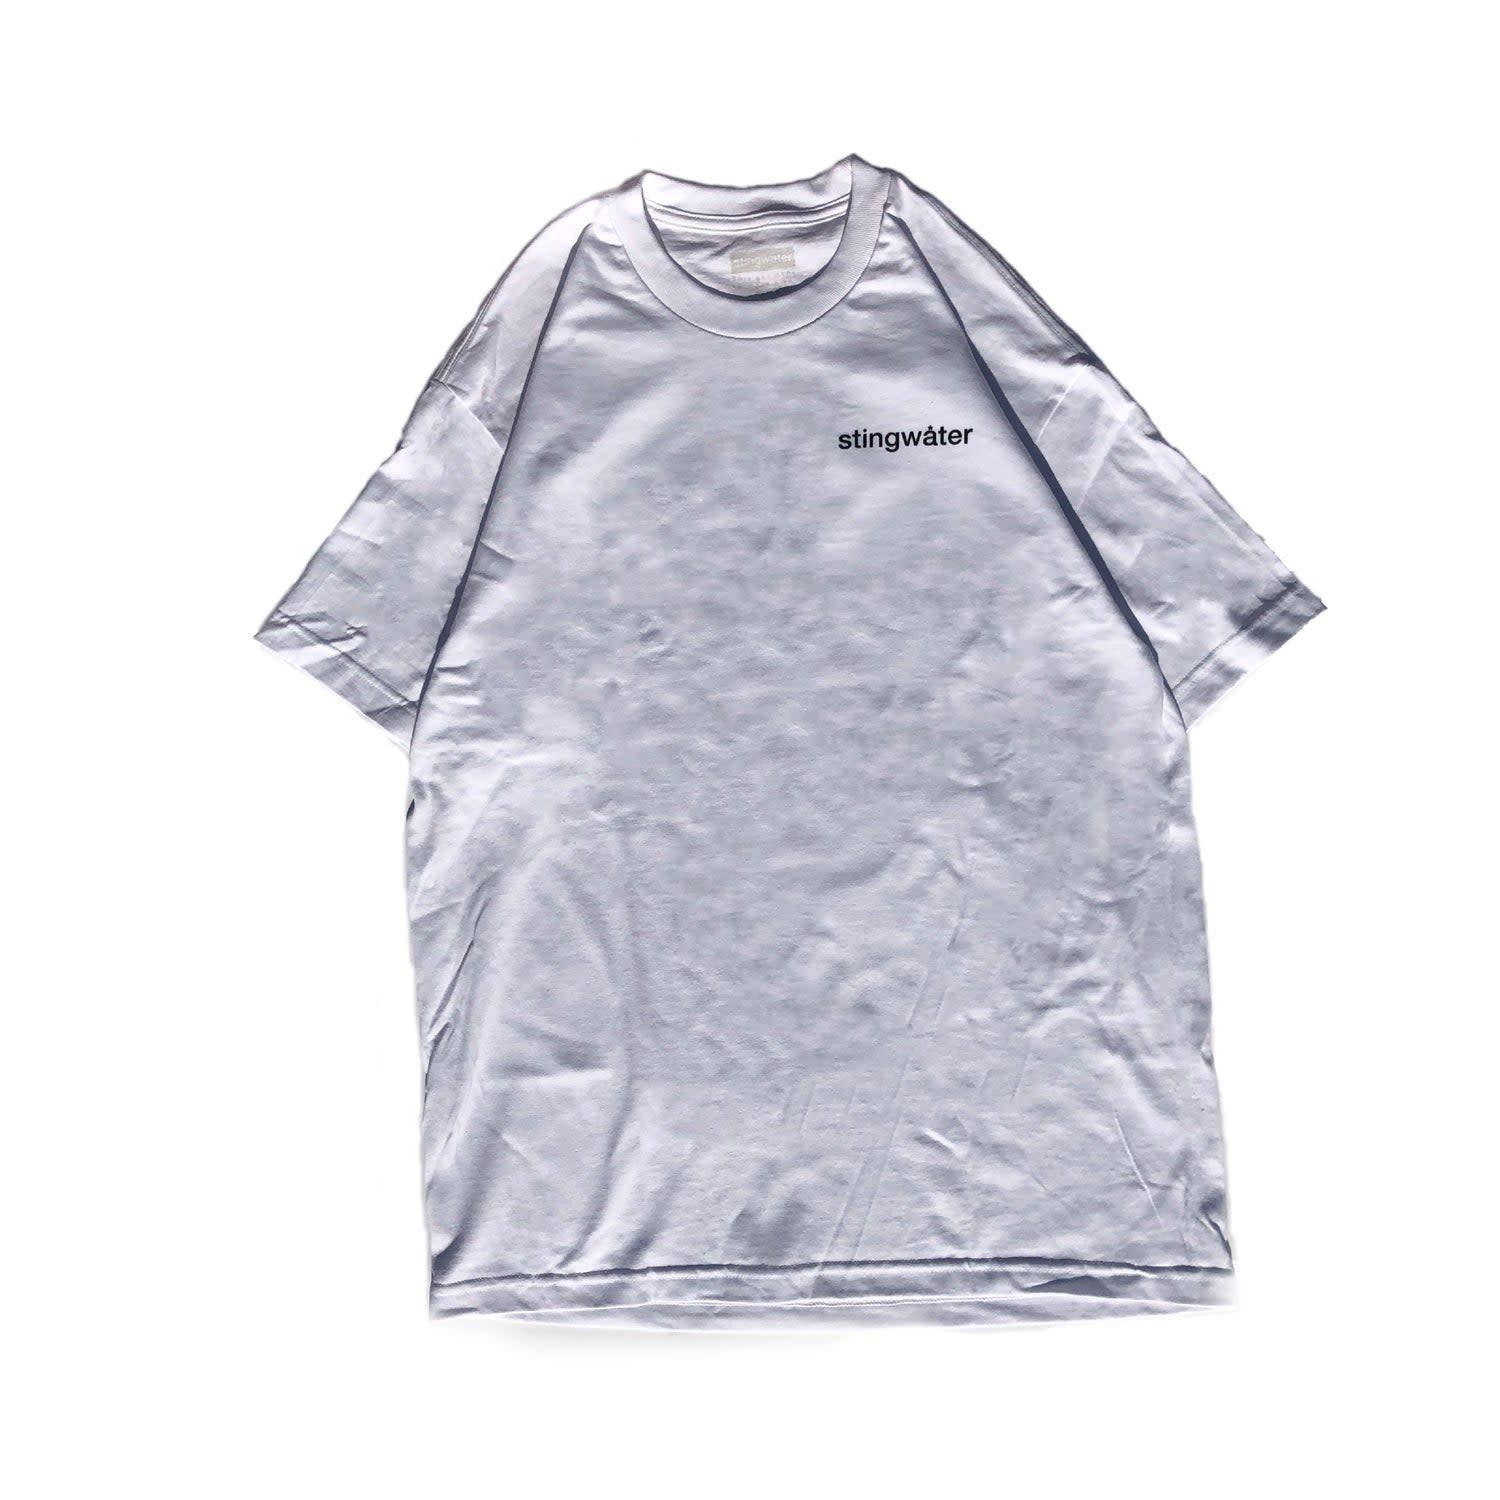 Stingwater Unknown White Tee